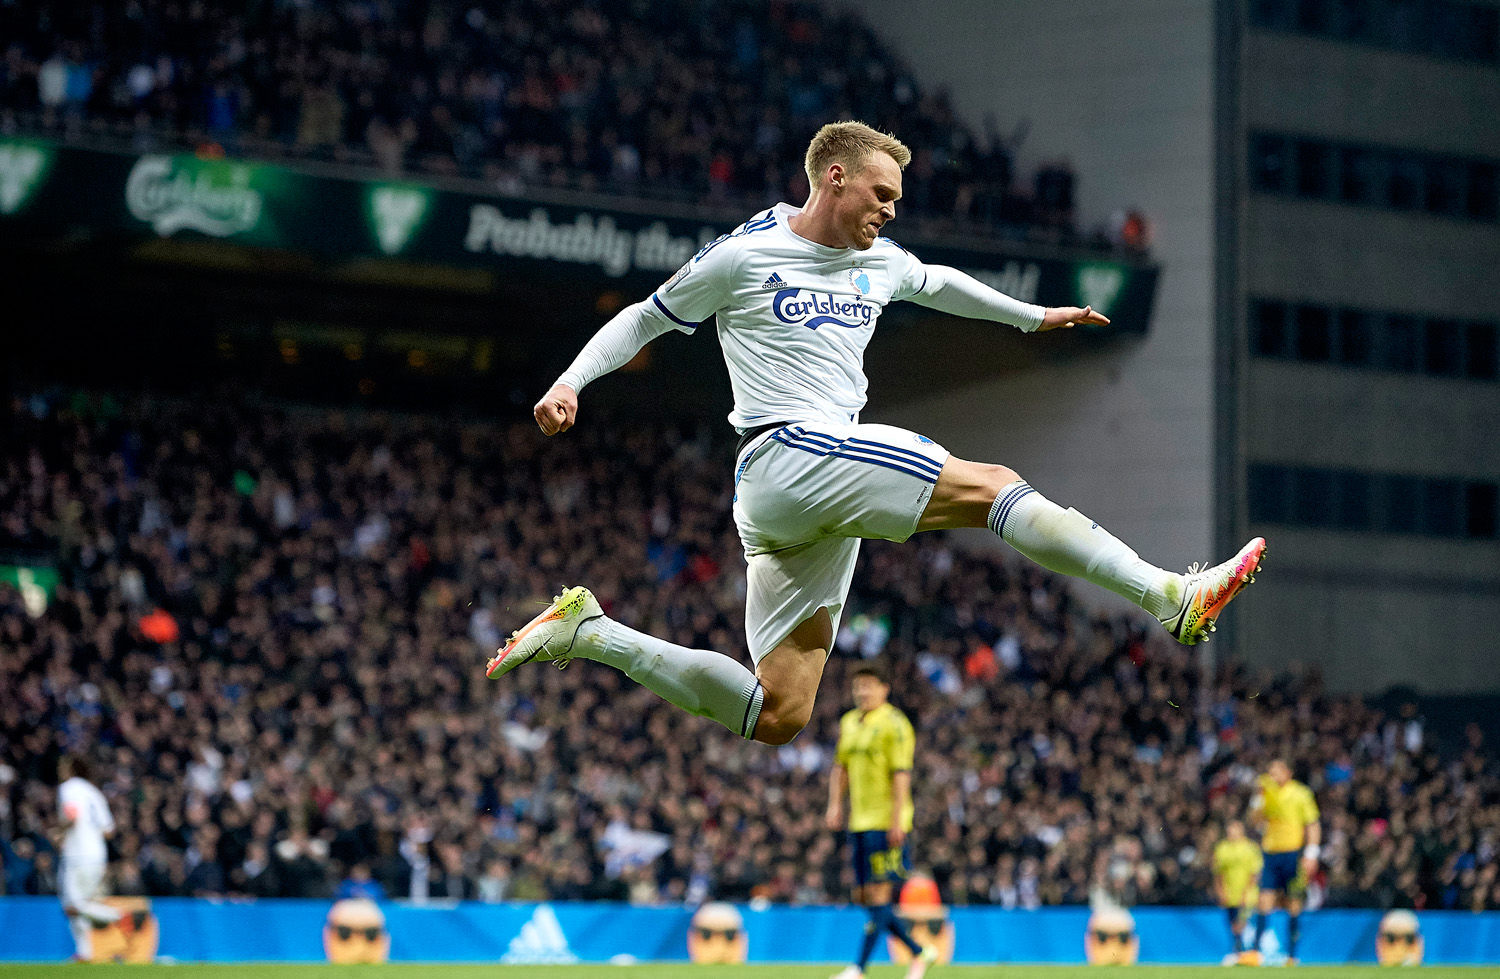 COPENHAGEN, DENMARK - APRIL 17: Nicolai Jorgensen of FC Copenhagen celebrates after scoring their second goal during the Danish Alka Superliga match between FC Copenhagen and Brondby IF at Telia Parken Stadium on April 17, 2016 in Copenhagen, Denmark. (Photo by Lars Ronbog / FrontZoneSport via Getty Images)